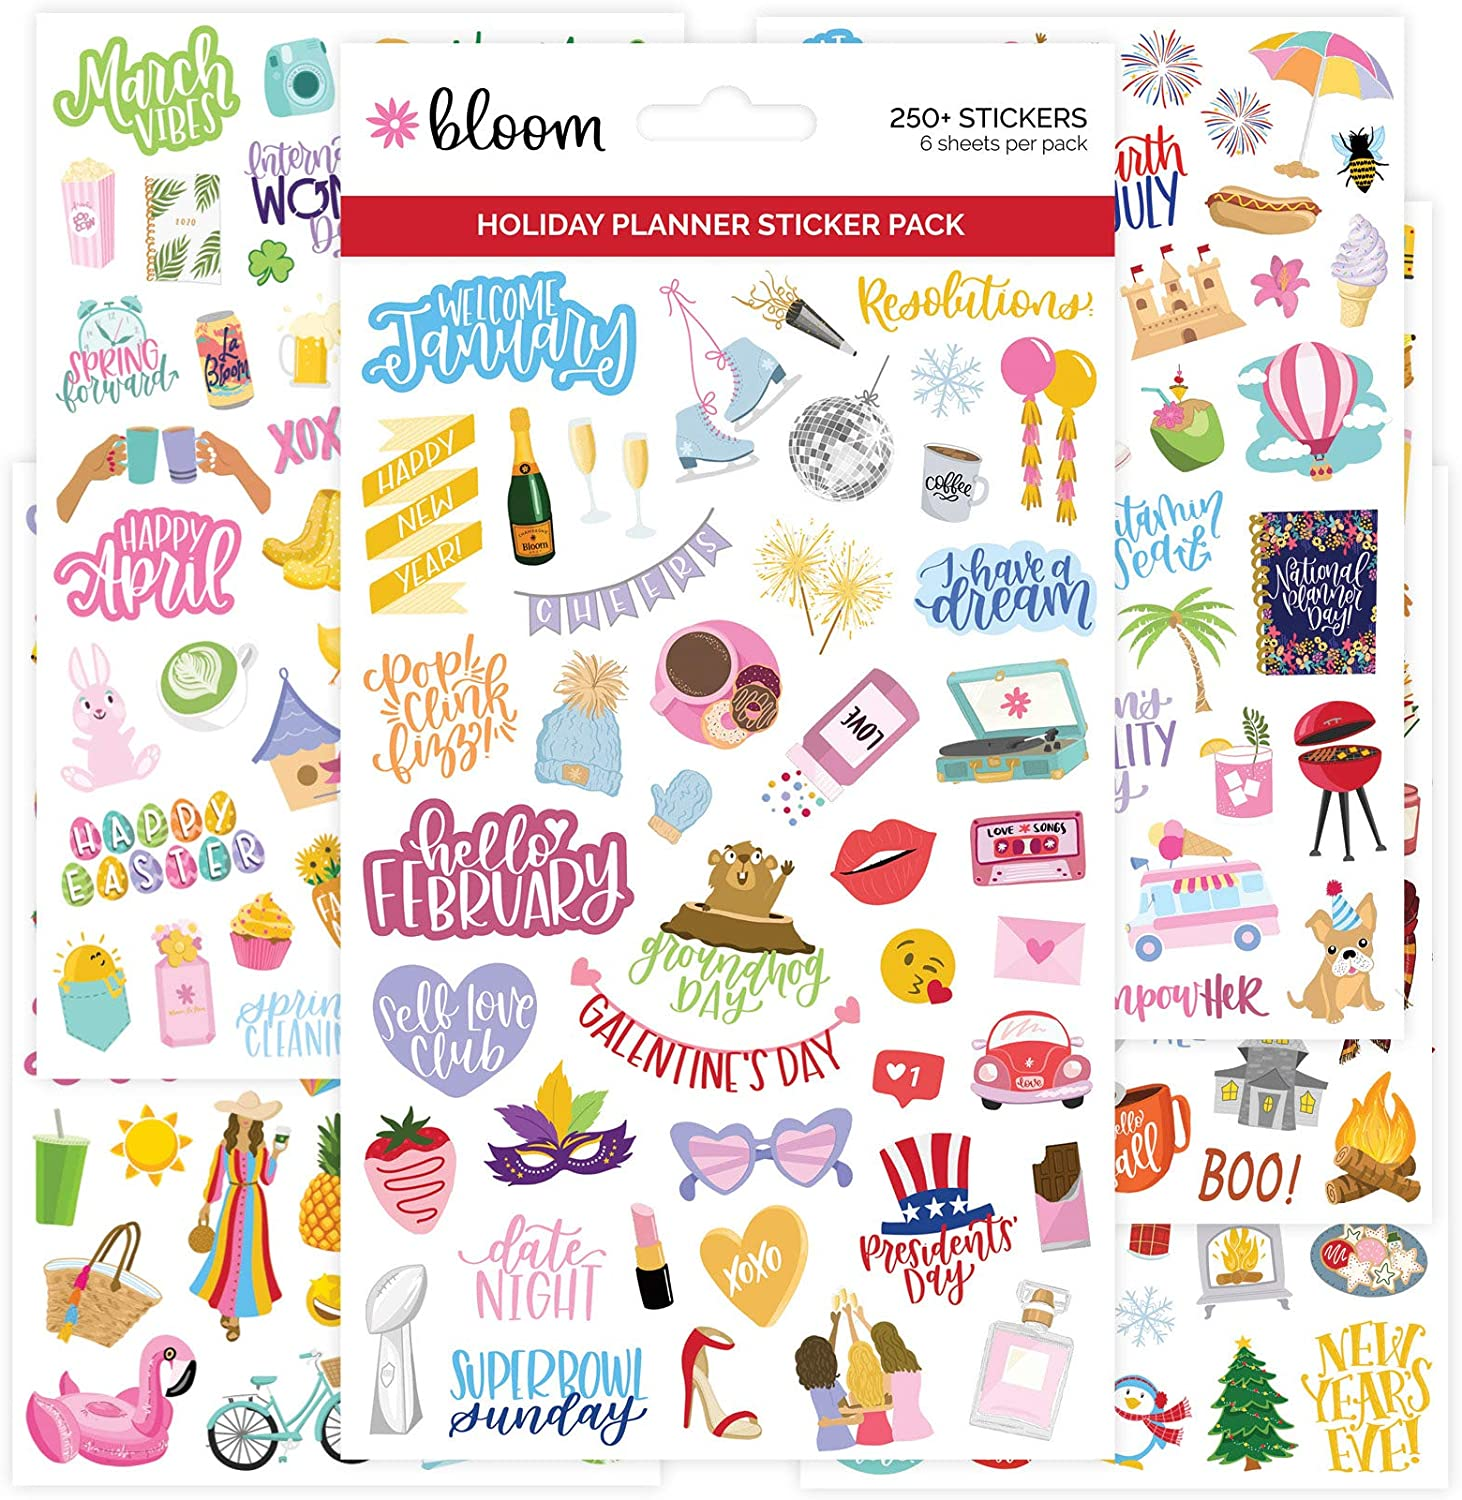 bloom daily planners New Holiday Seasonal Planner Sticker Sheets - Seasonal Sticker Pack - Over 250 Stickers Per Pack!